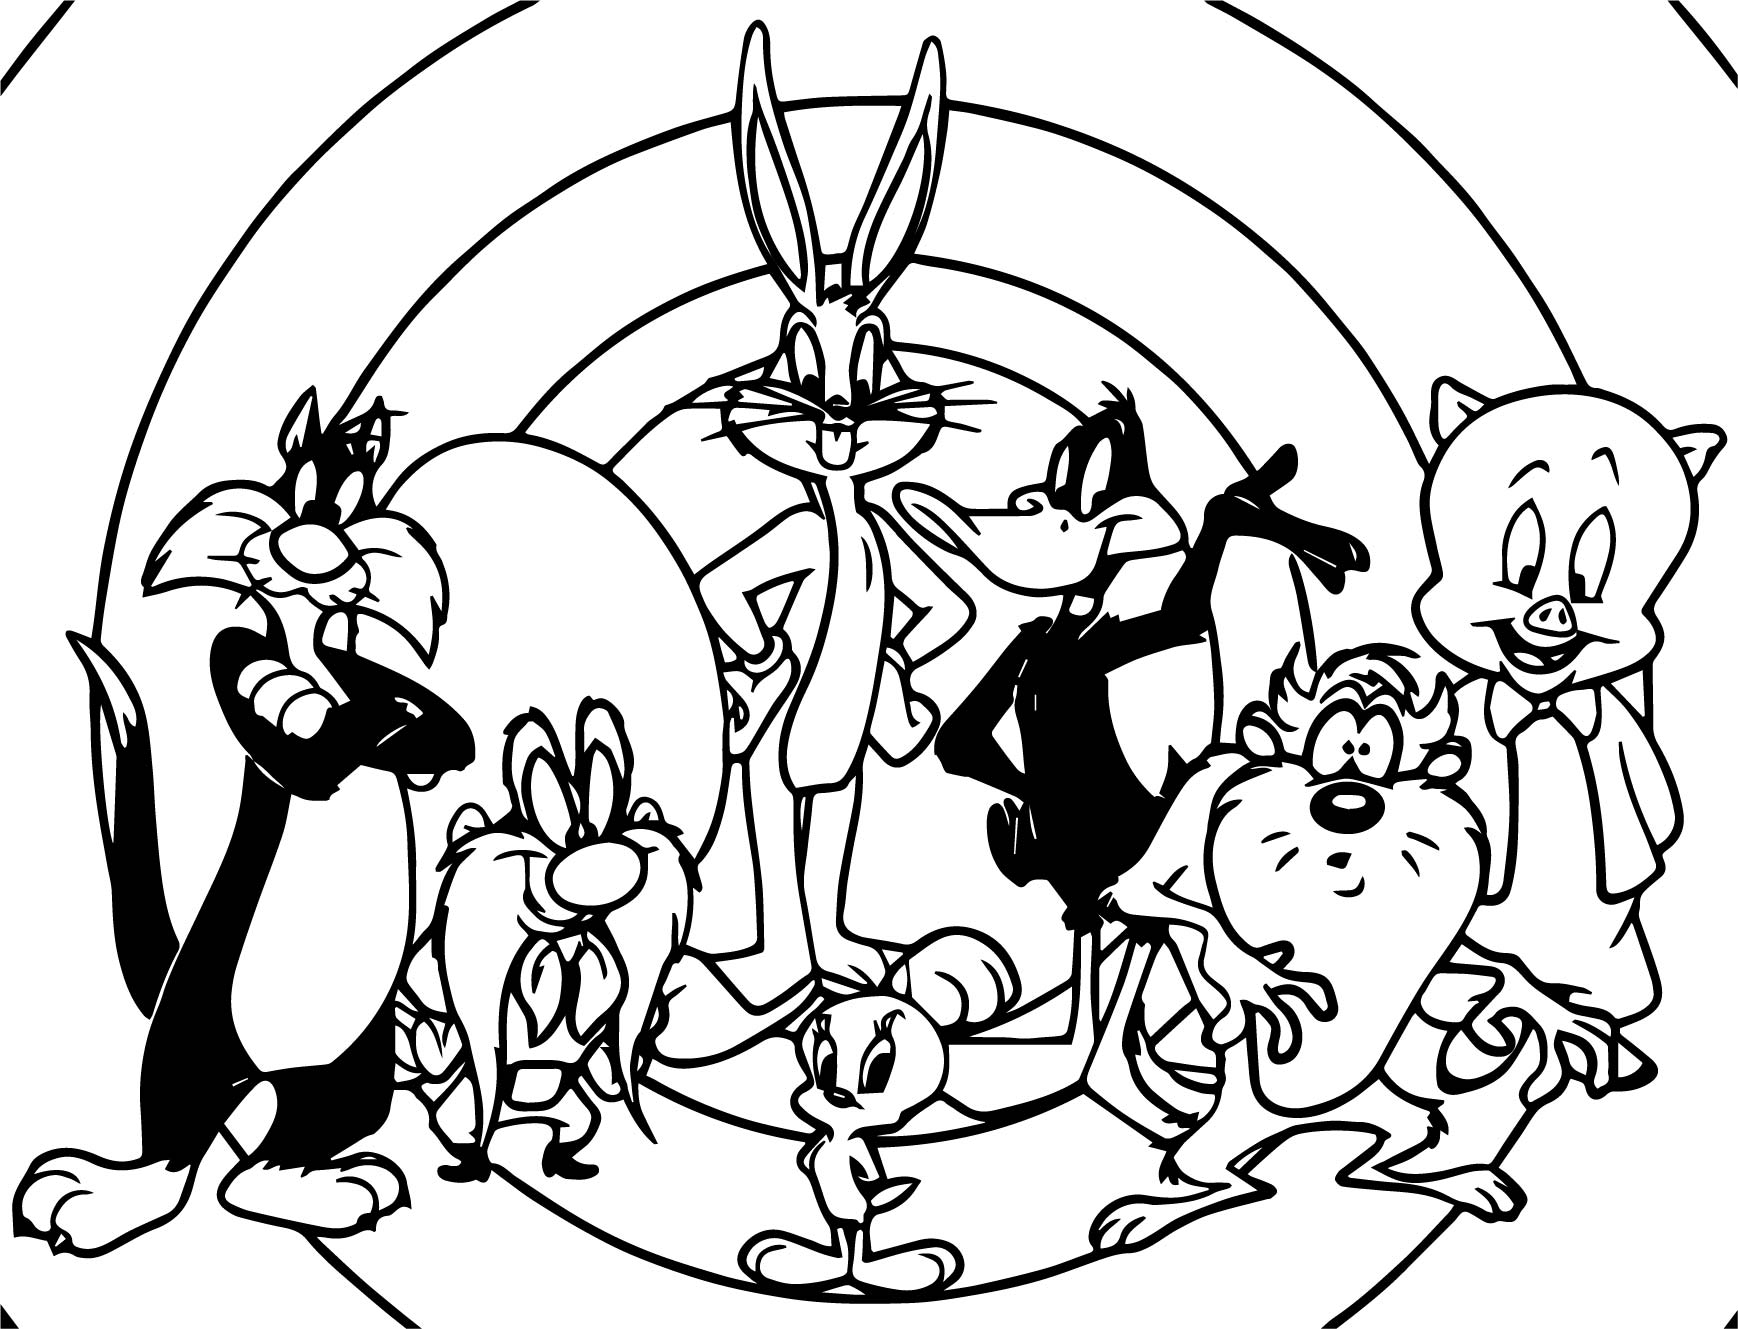 Just The Looney Tunes Coloring Page